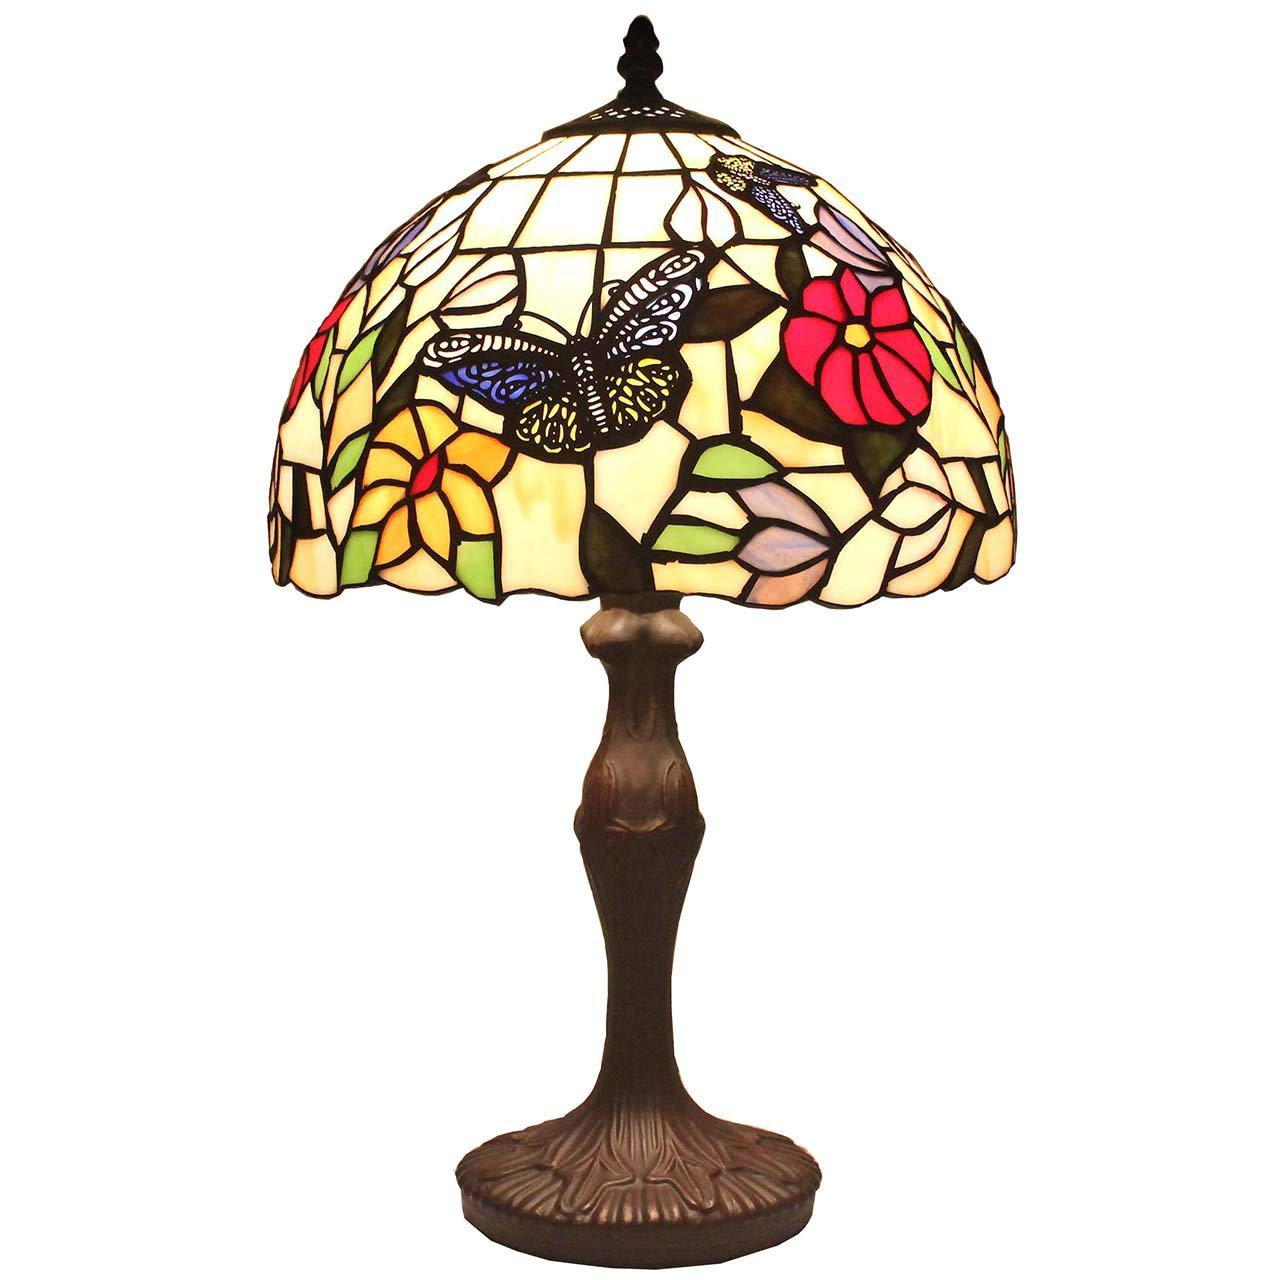 BIEYE L11407 Butterfly Tiffany Style Stained Glass Table Lamp Night Light with 12 inch Wide Handmade Lampshade for Coffee Table Bedside Bedroom Living Room, 18 inch Tall